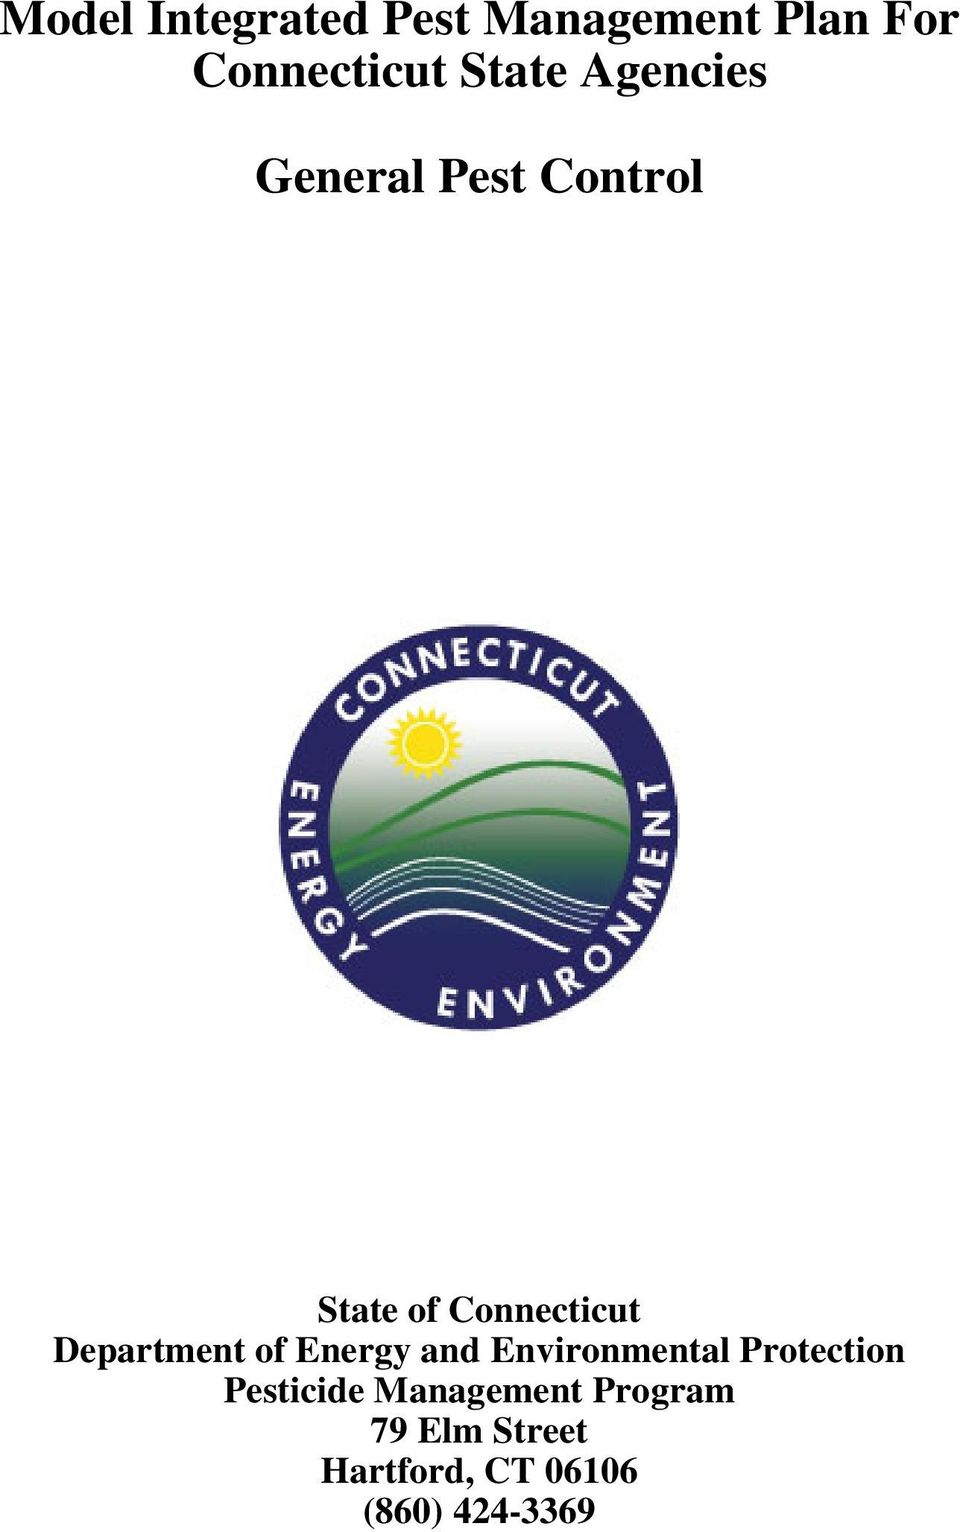 Department of Energy and Environmental Protection Pesticide